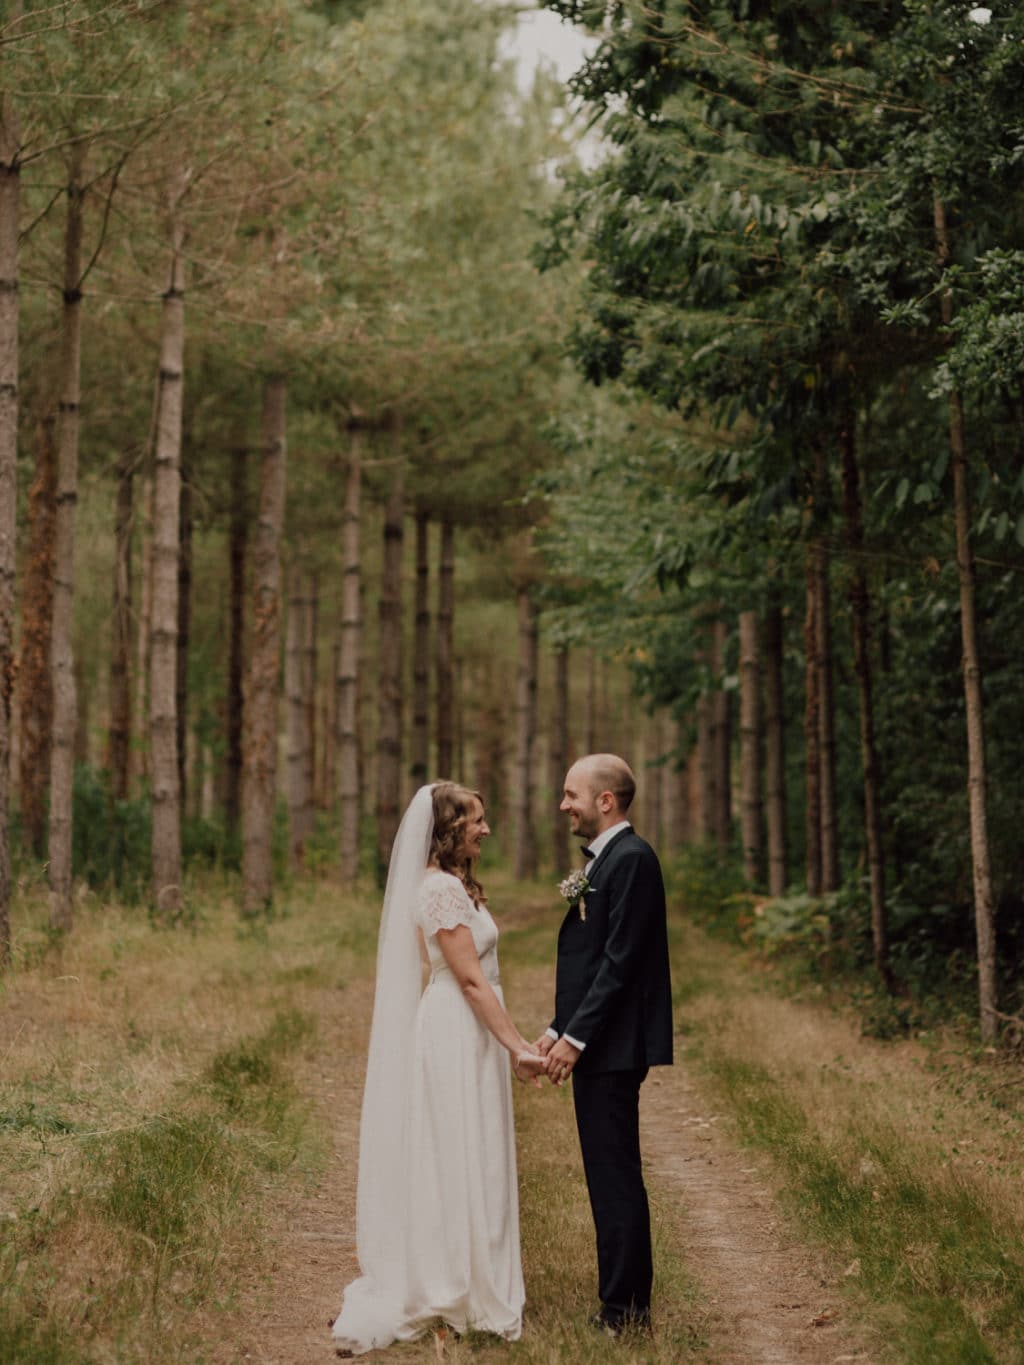 capyture-wedding-photographer-destination-nature-france-ireland-311